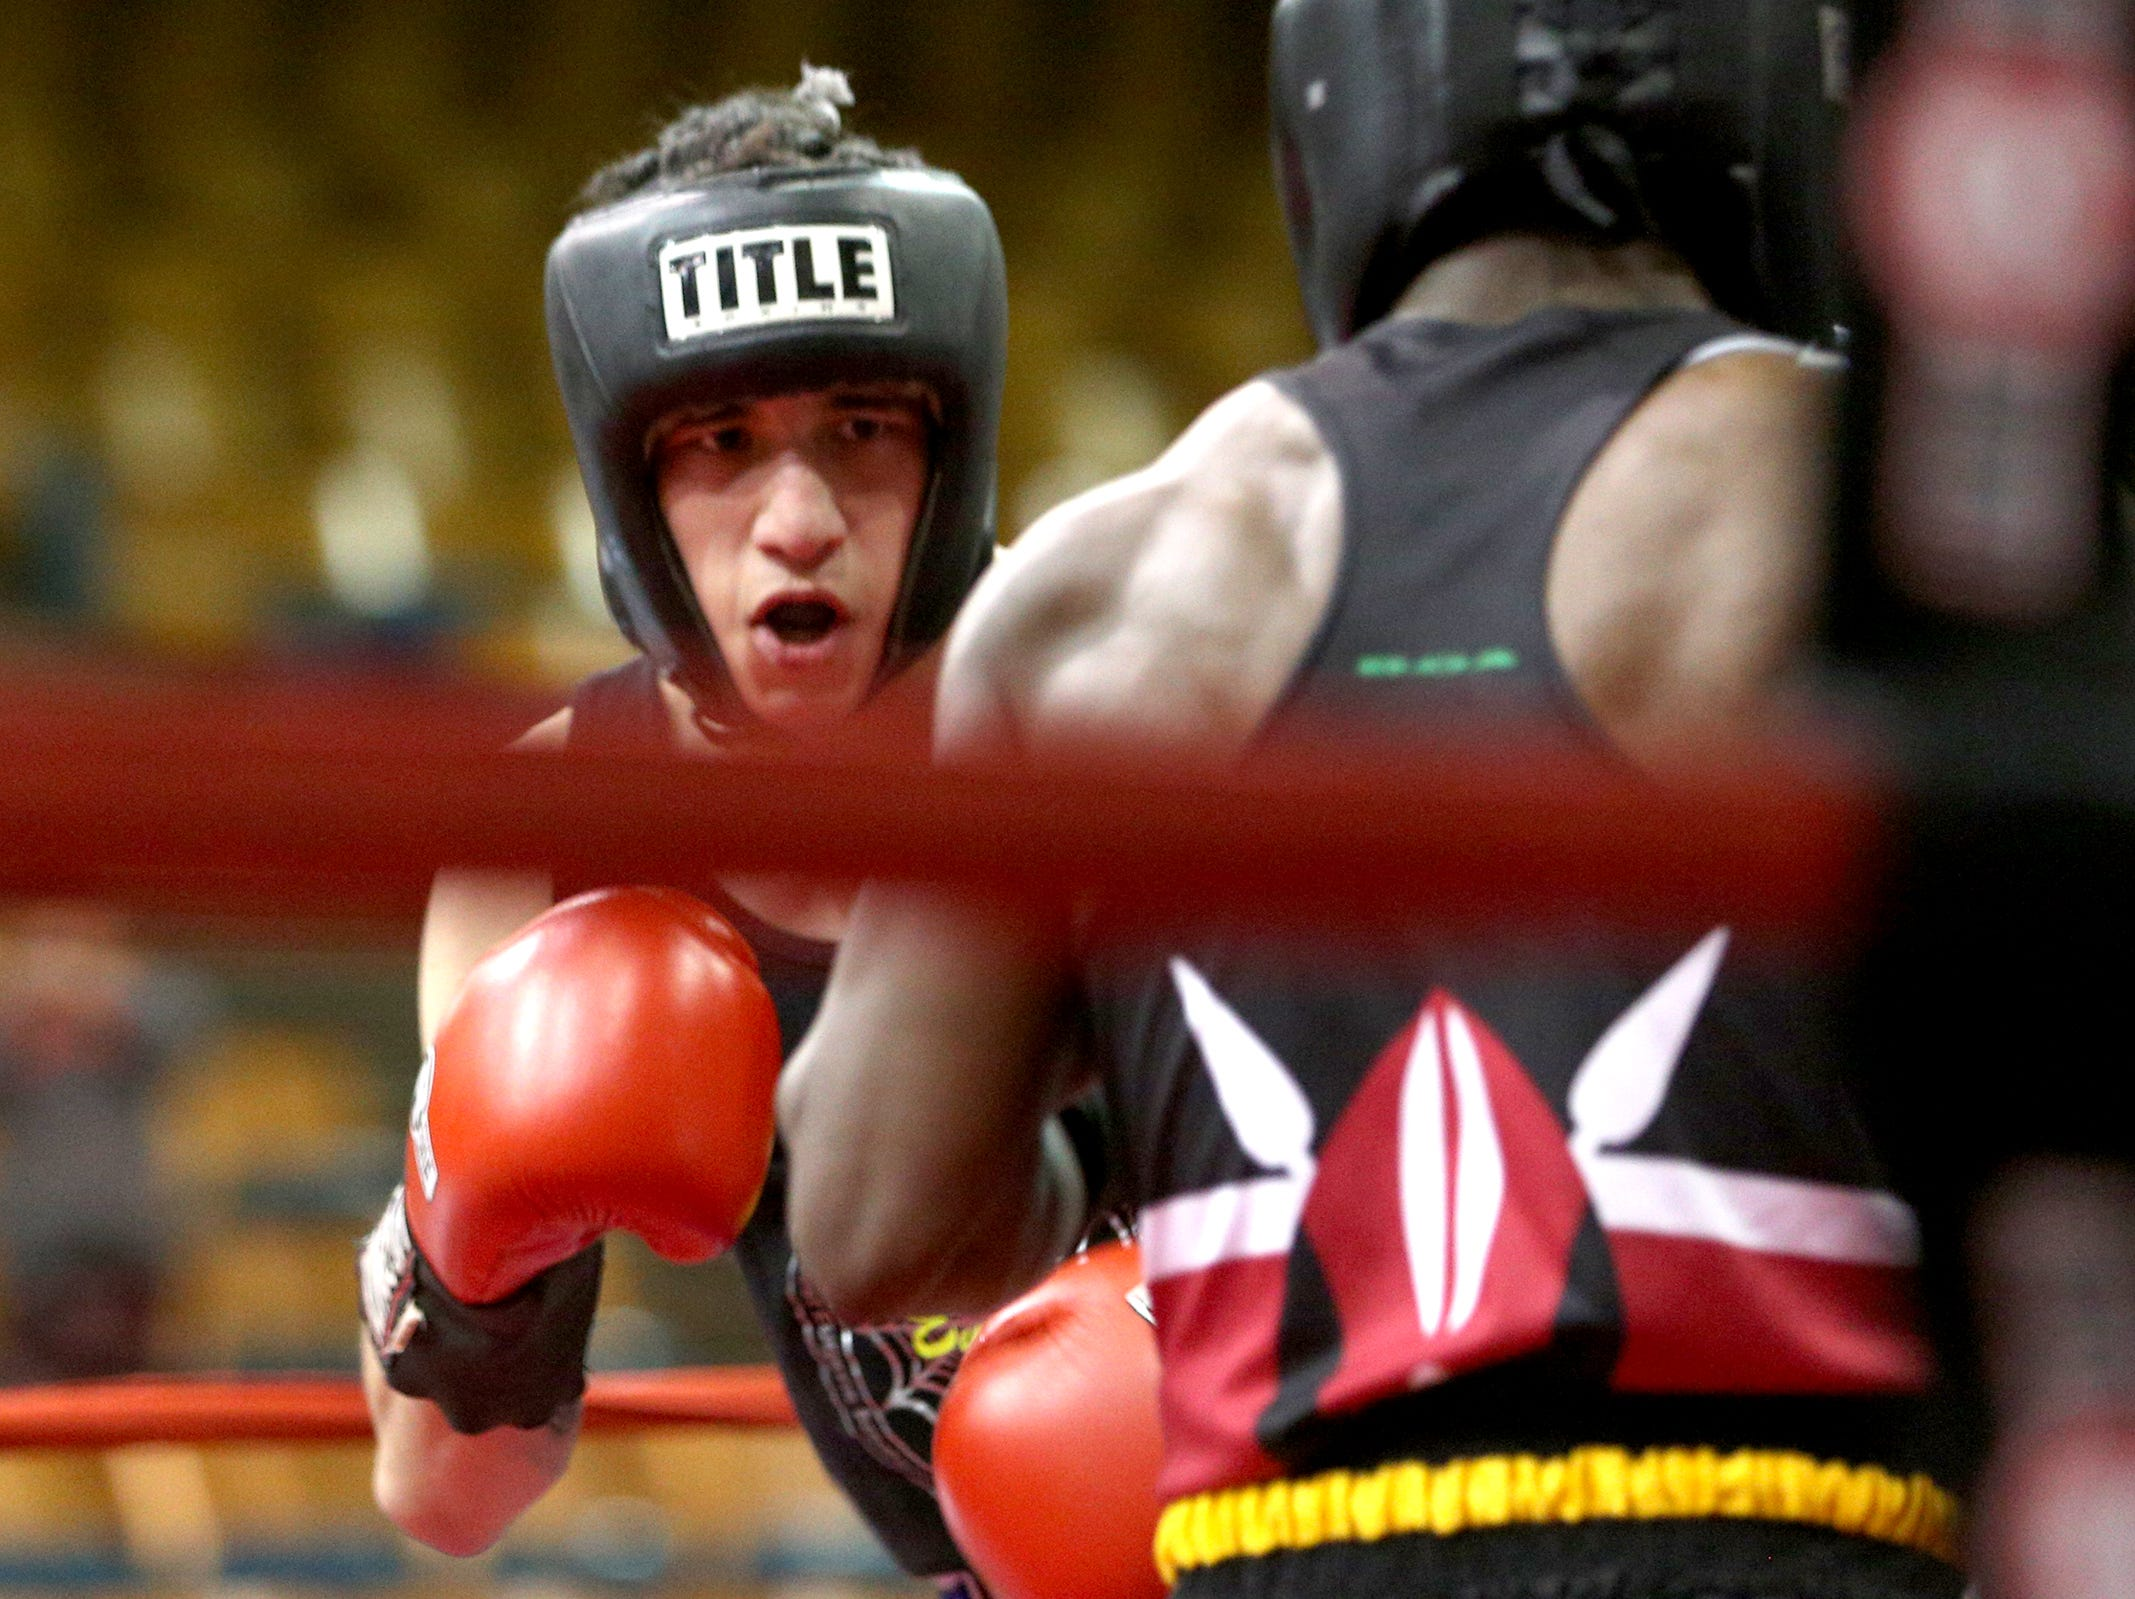 Anthony Cruz of Eugene competes in the Oregon Golden Gloves championship matches at the Salem Armory on Saturday, Feb. 2, 2019.